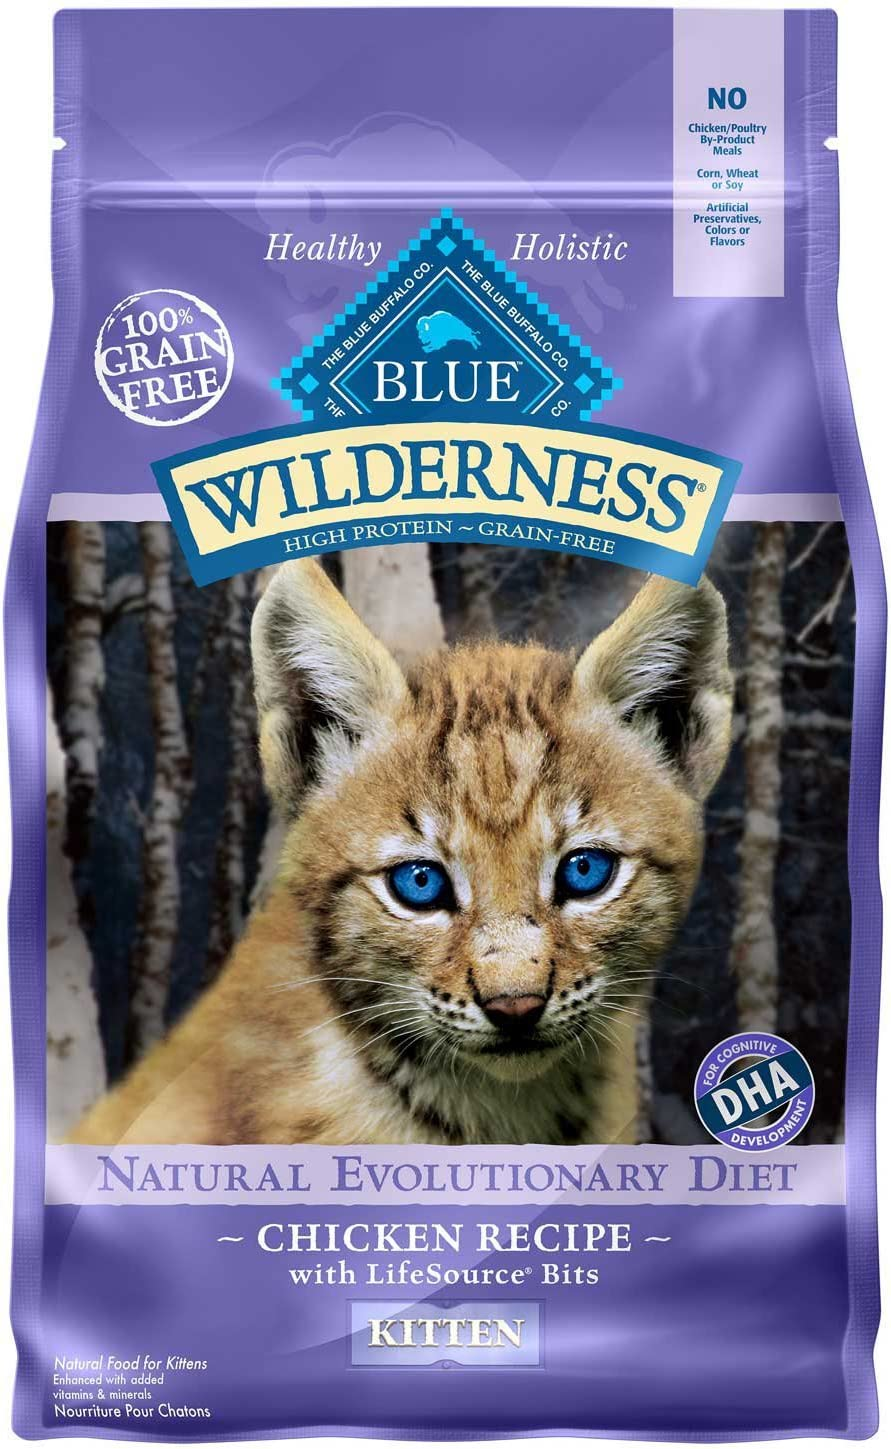 Blue Buffalo Wilderness Natural Kitten Dry Cat Food Image